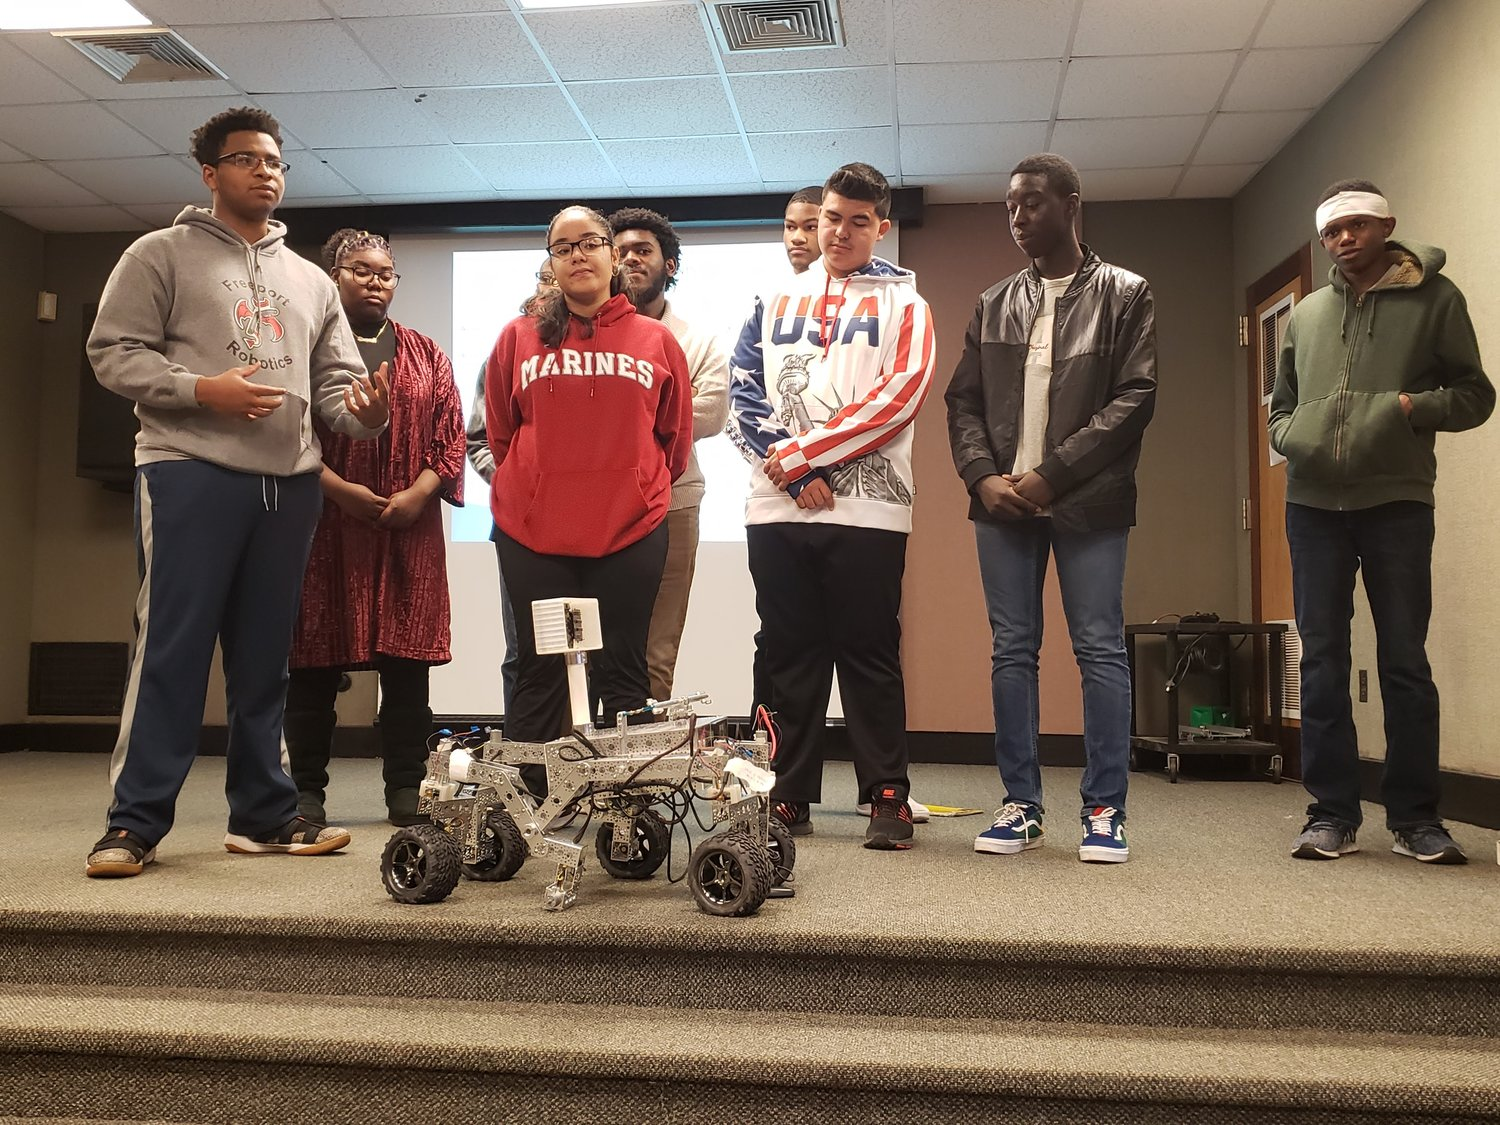 The Freeport Robotics Club presented its prototype of a miniature Mars Rover.